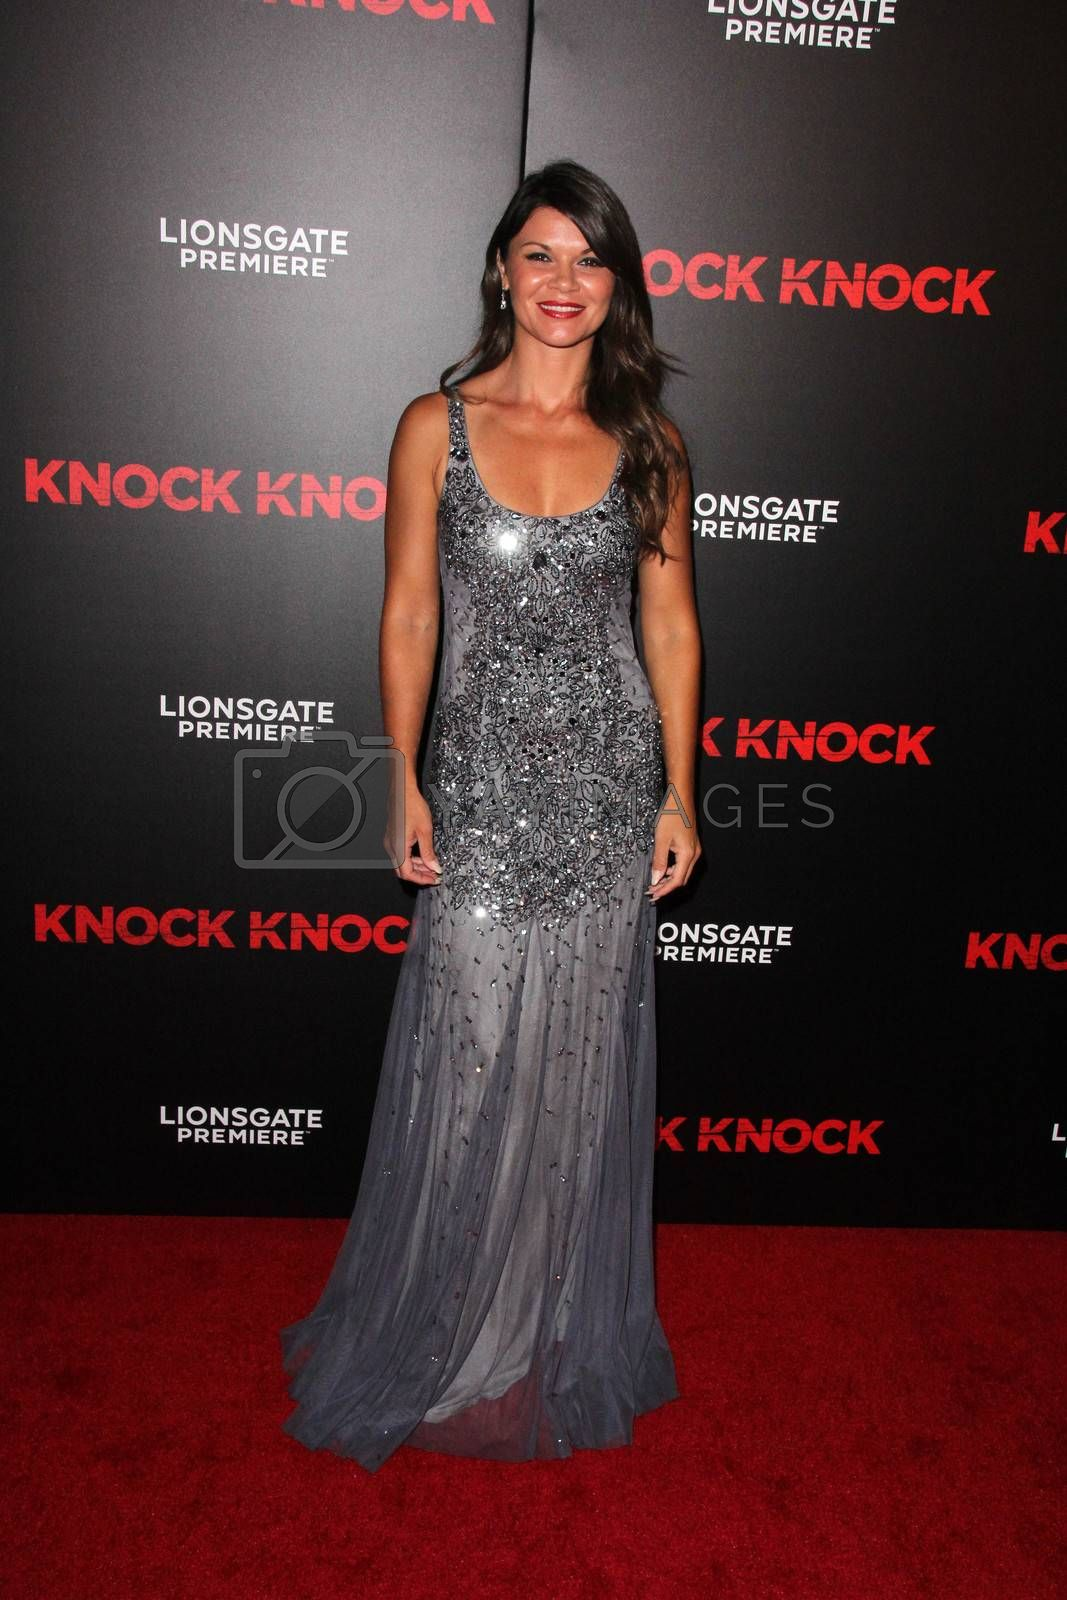 """Danielle Vasinova at the """"Knock Knock"""" Los Angeles Premiere, TCL Chinese Theater, Hollywood, CA 10-08-15/ImageCollect by ImageCollect"""